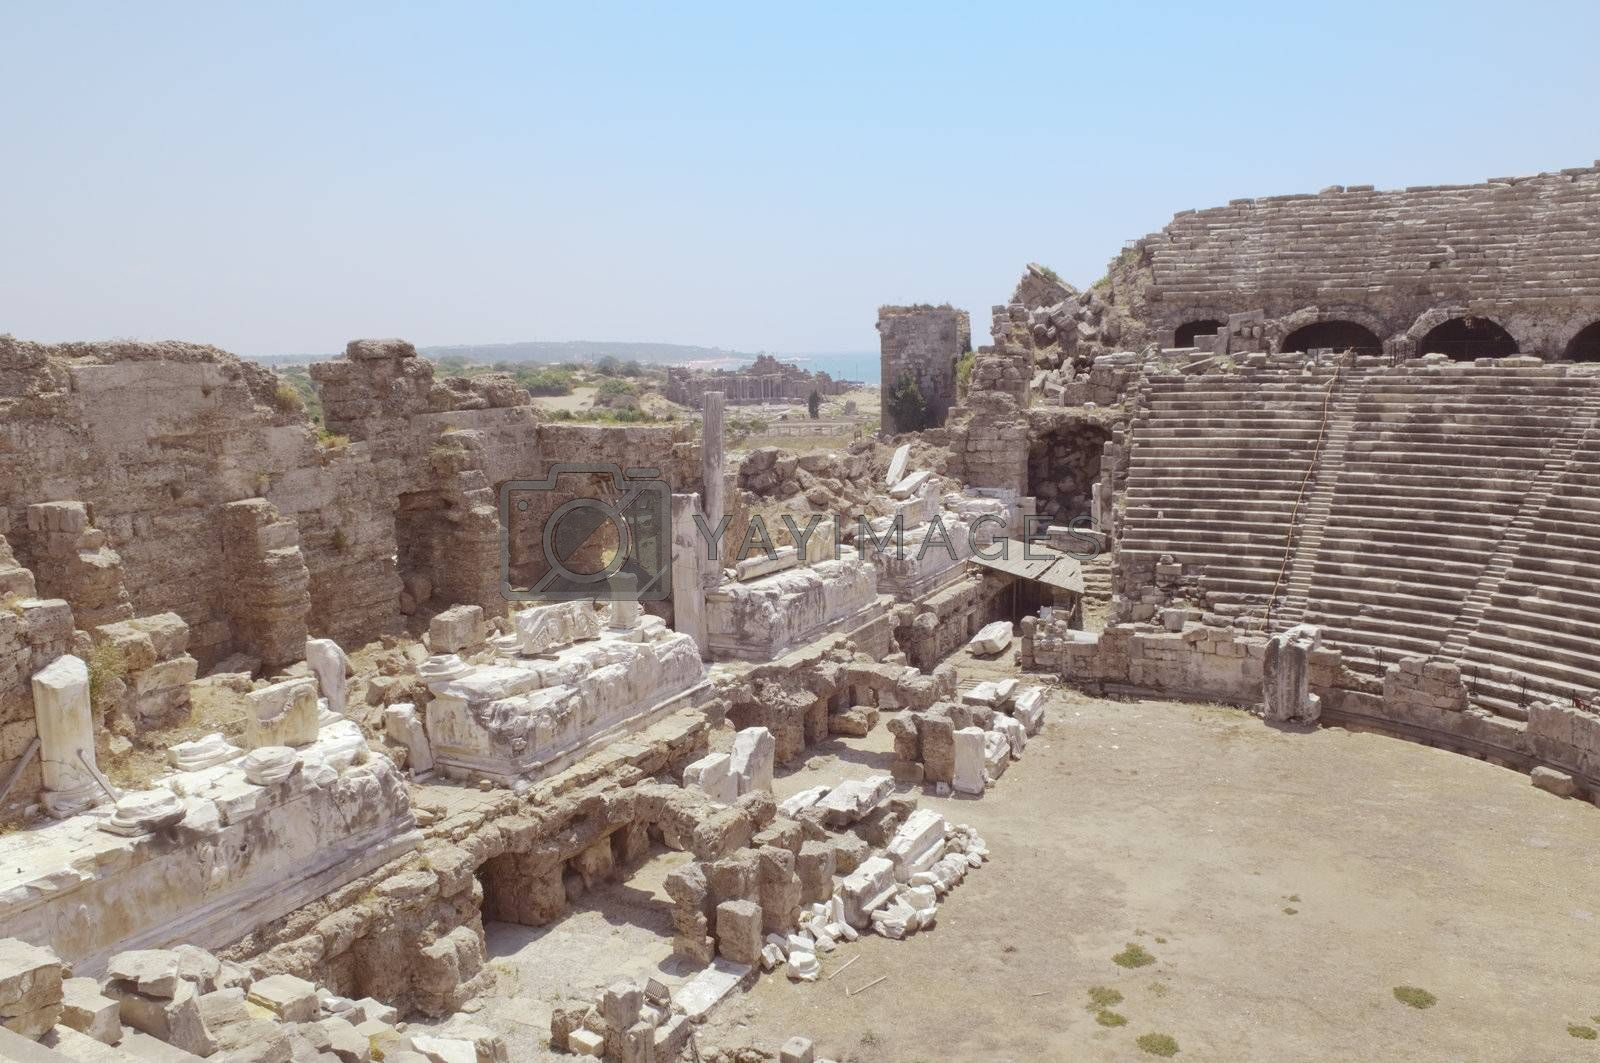 The ruins of the ancient amphitheater. Turkey, Side. Amid the ruins - ancient columns.